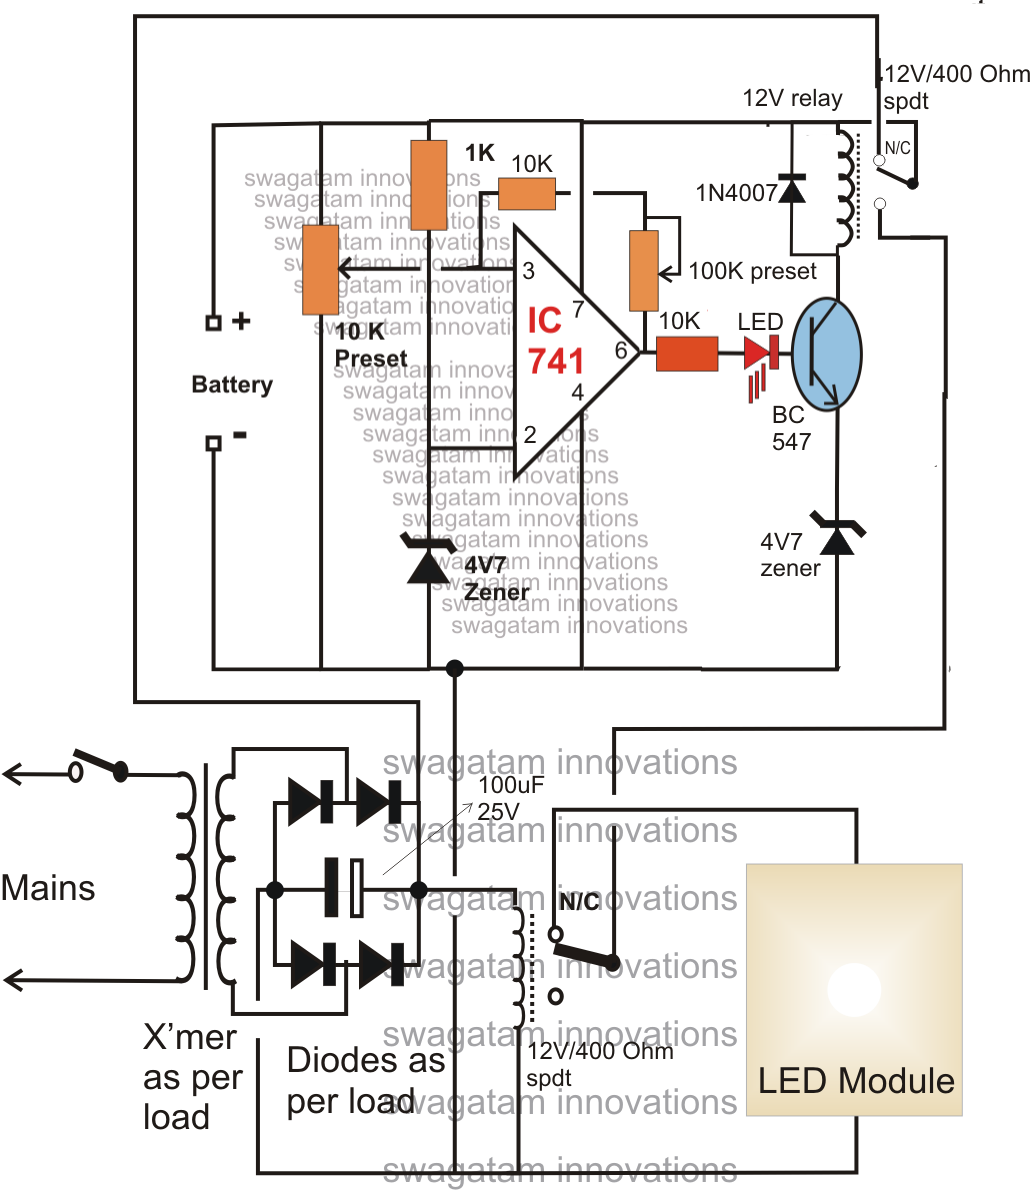 Led Lamp Driver Circuit Diagram 2004 Dodge Neon Engine Make This Automatic 10 Watt To 1000 Emergency